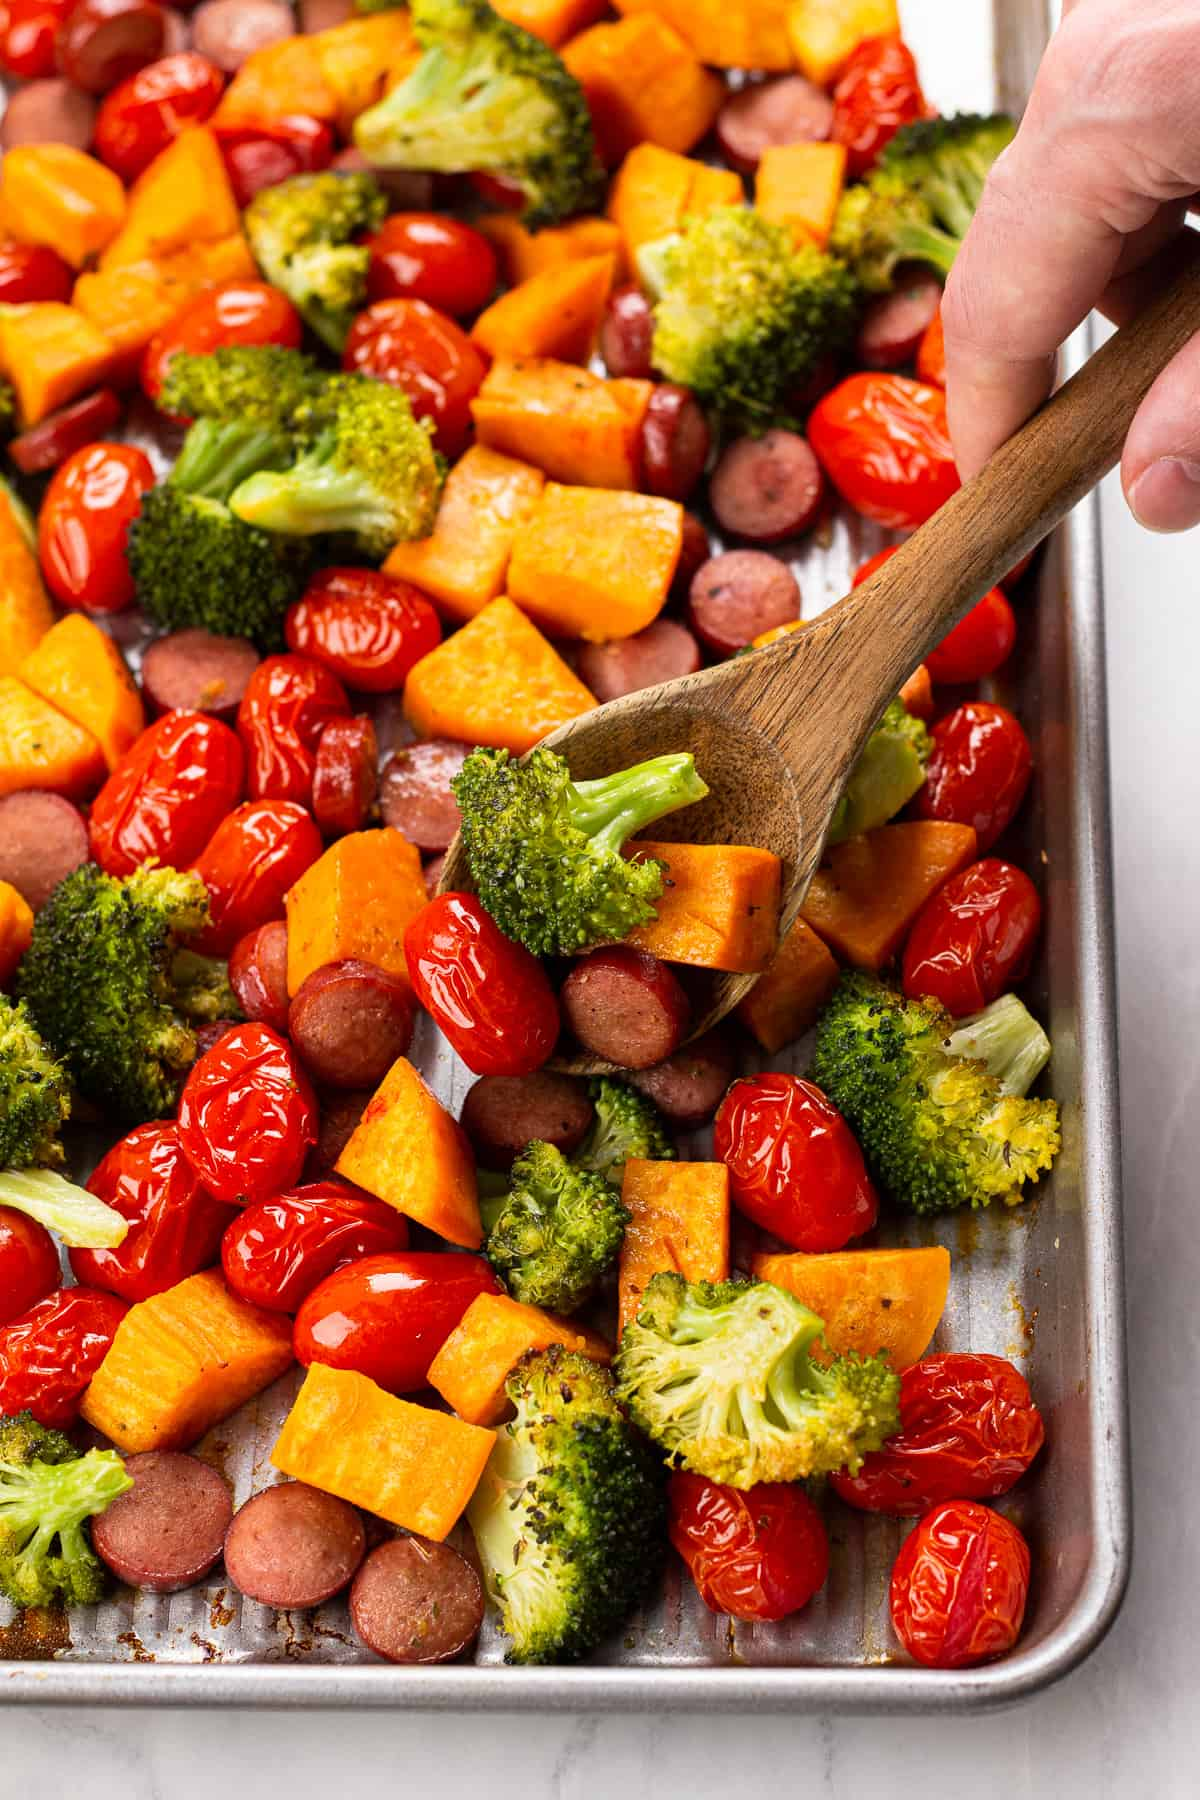 A wooden spoon scoops out roasted vegetables from a sheet pan.